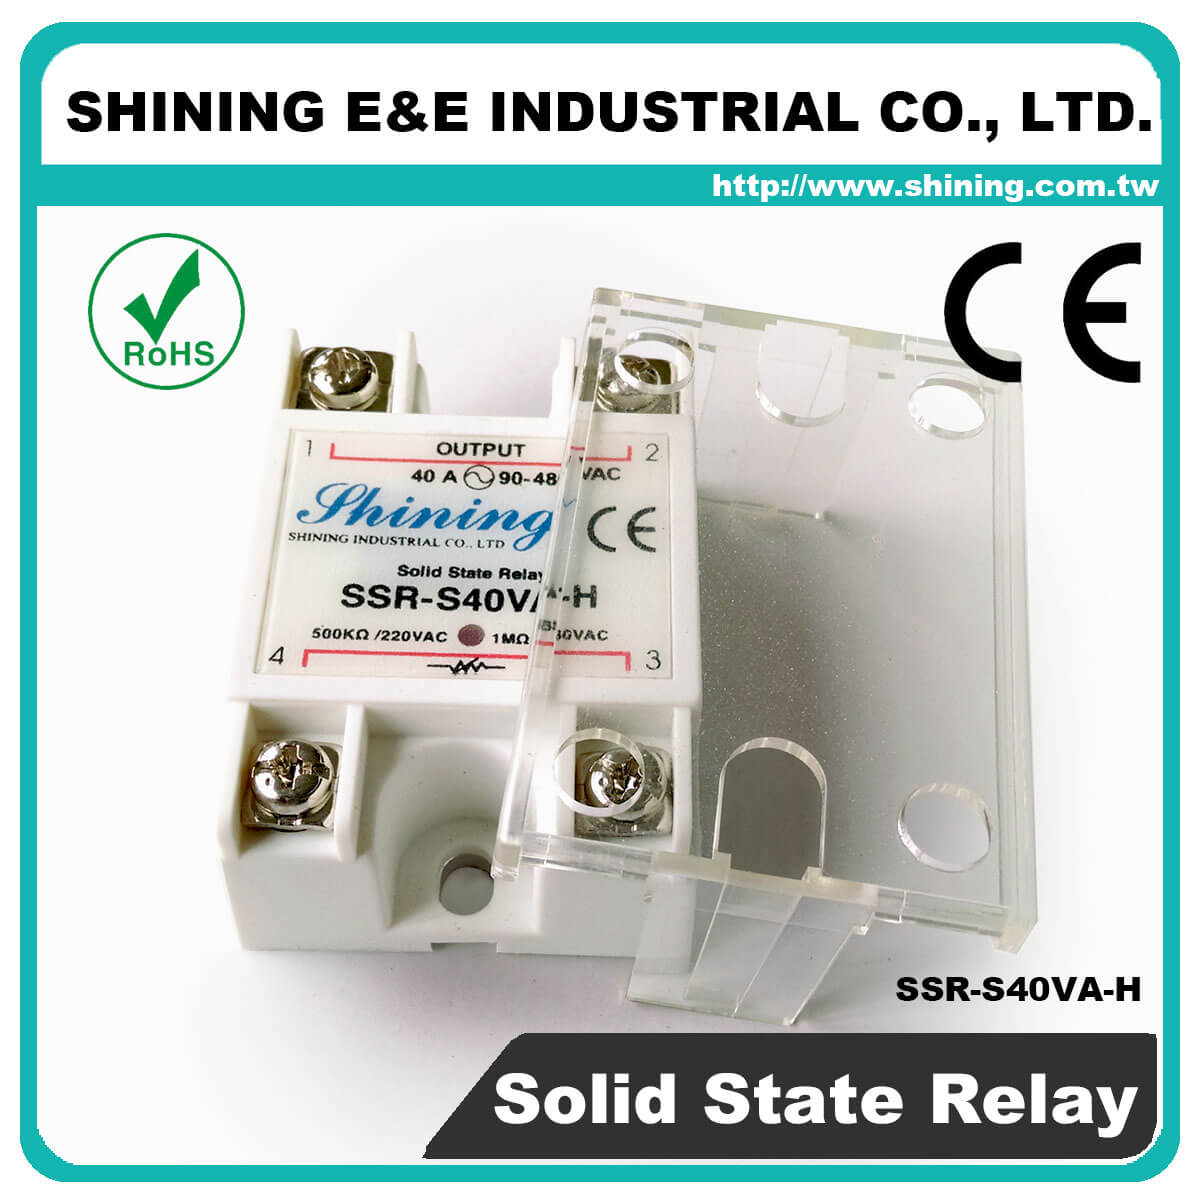 Ssr Sxxva Series Vrtoac Single Phase Solid State Relay The Professional S40va H Vr To Ac 40a 480vac